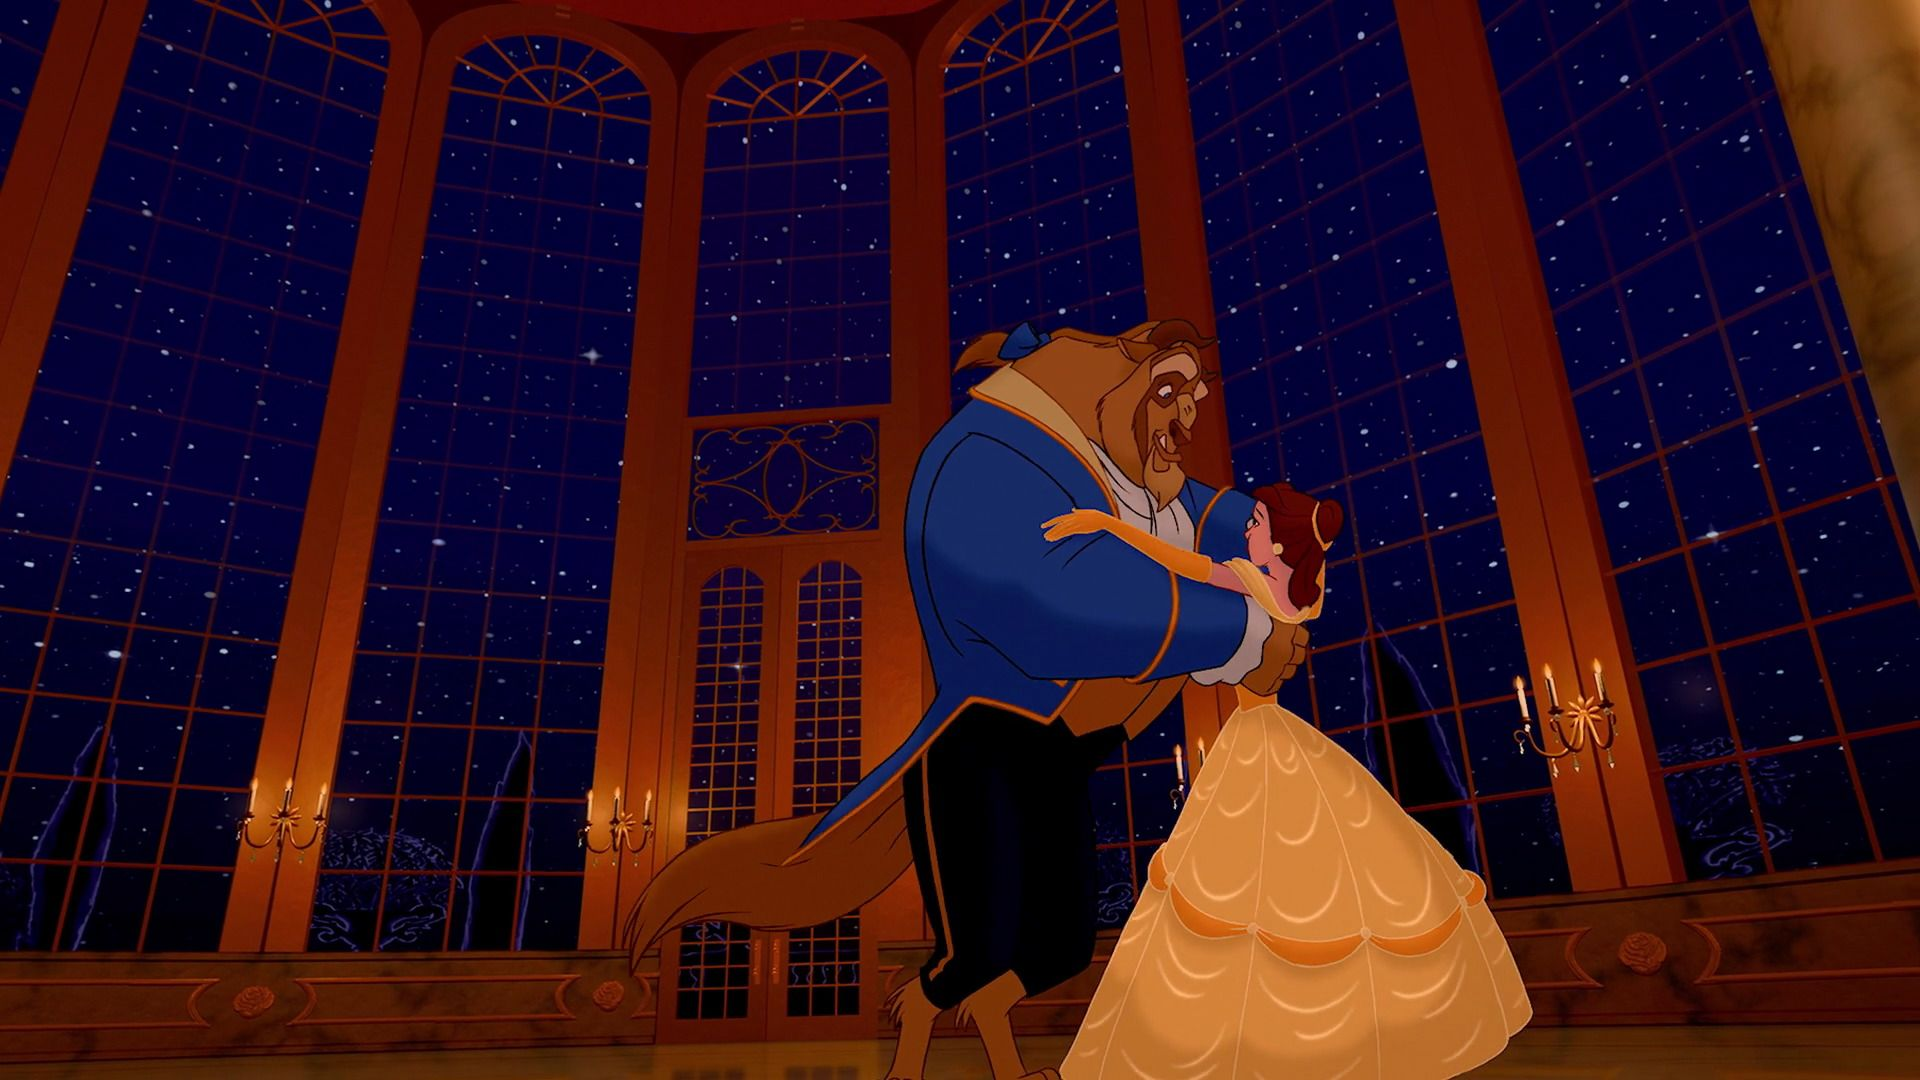 belle and the beast dancing in the ballroom in tale as old as time belle and the beast dancing in the ballroom in tale as old as time beauty